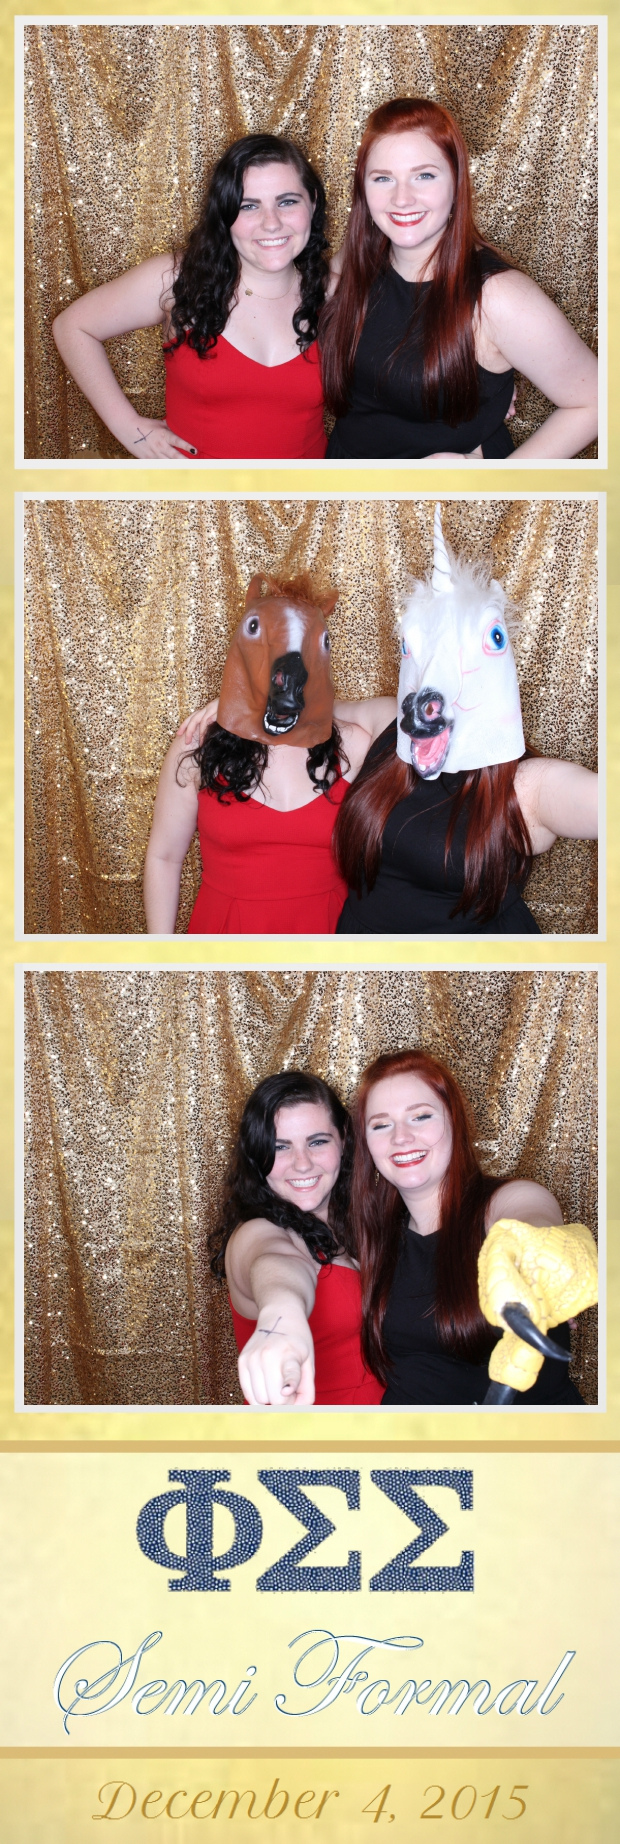 Guest House Events Photo Booth Phi Sigma Sigma Semi Formal (71).jpg